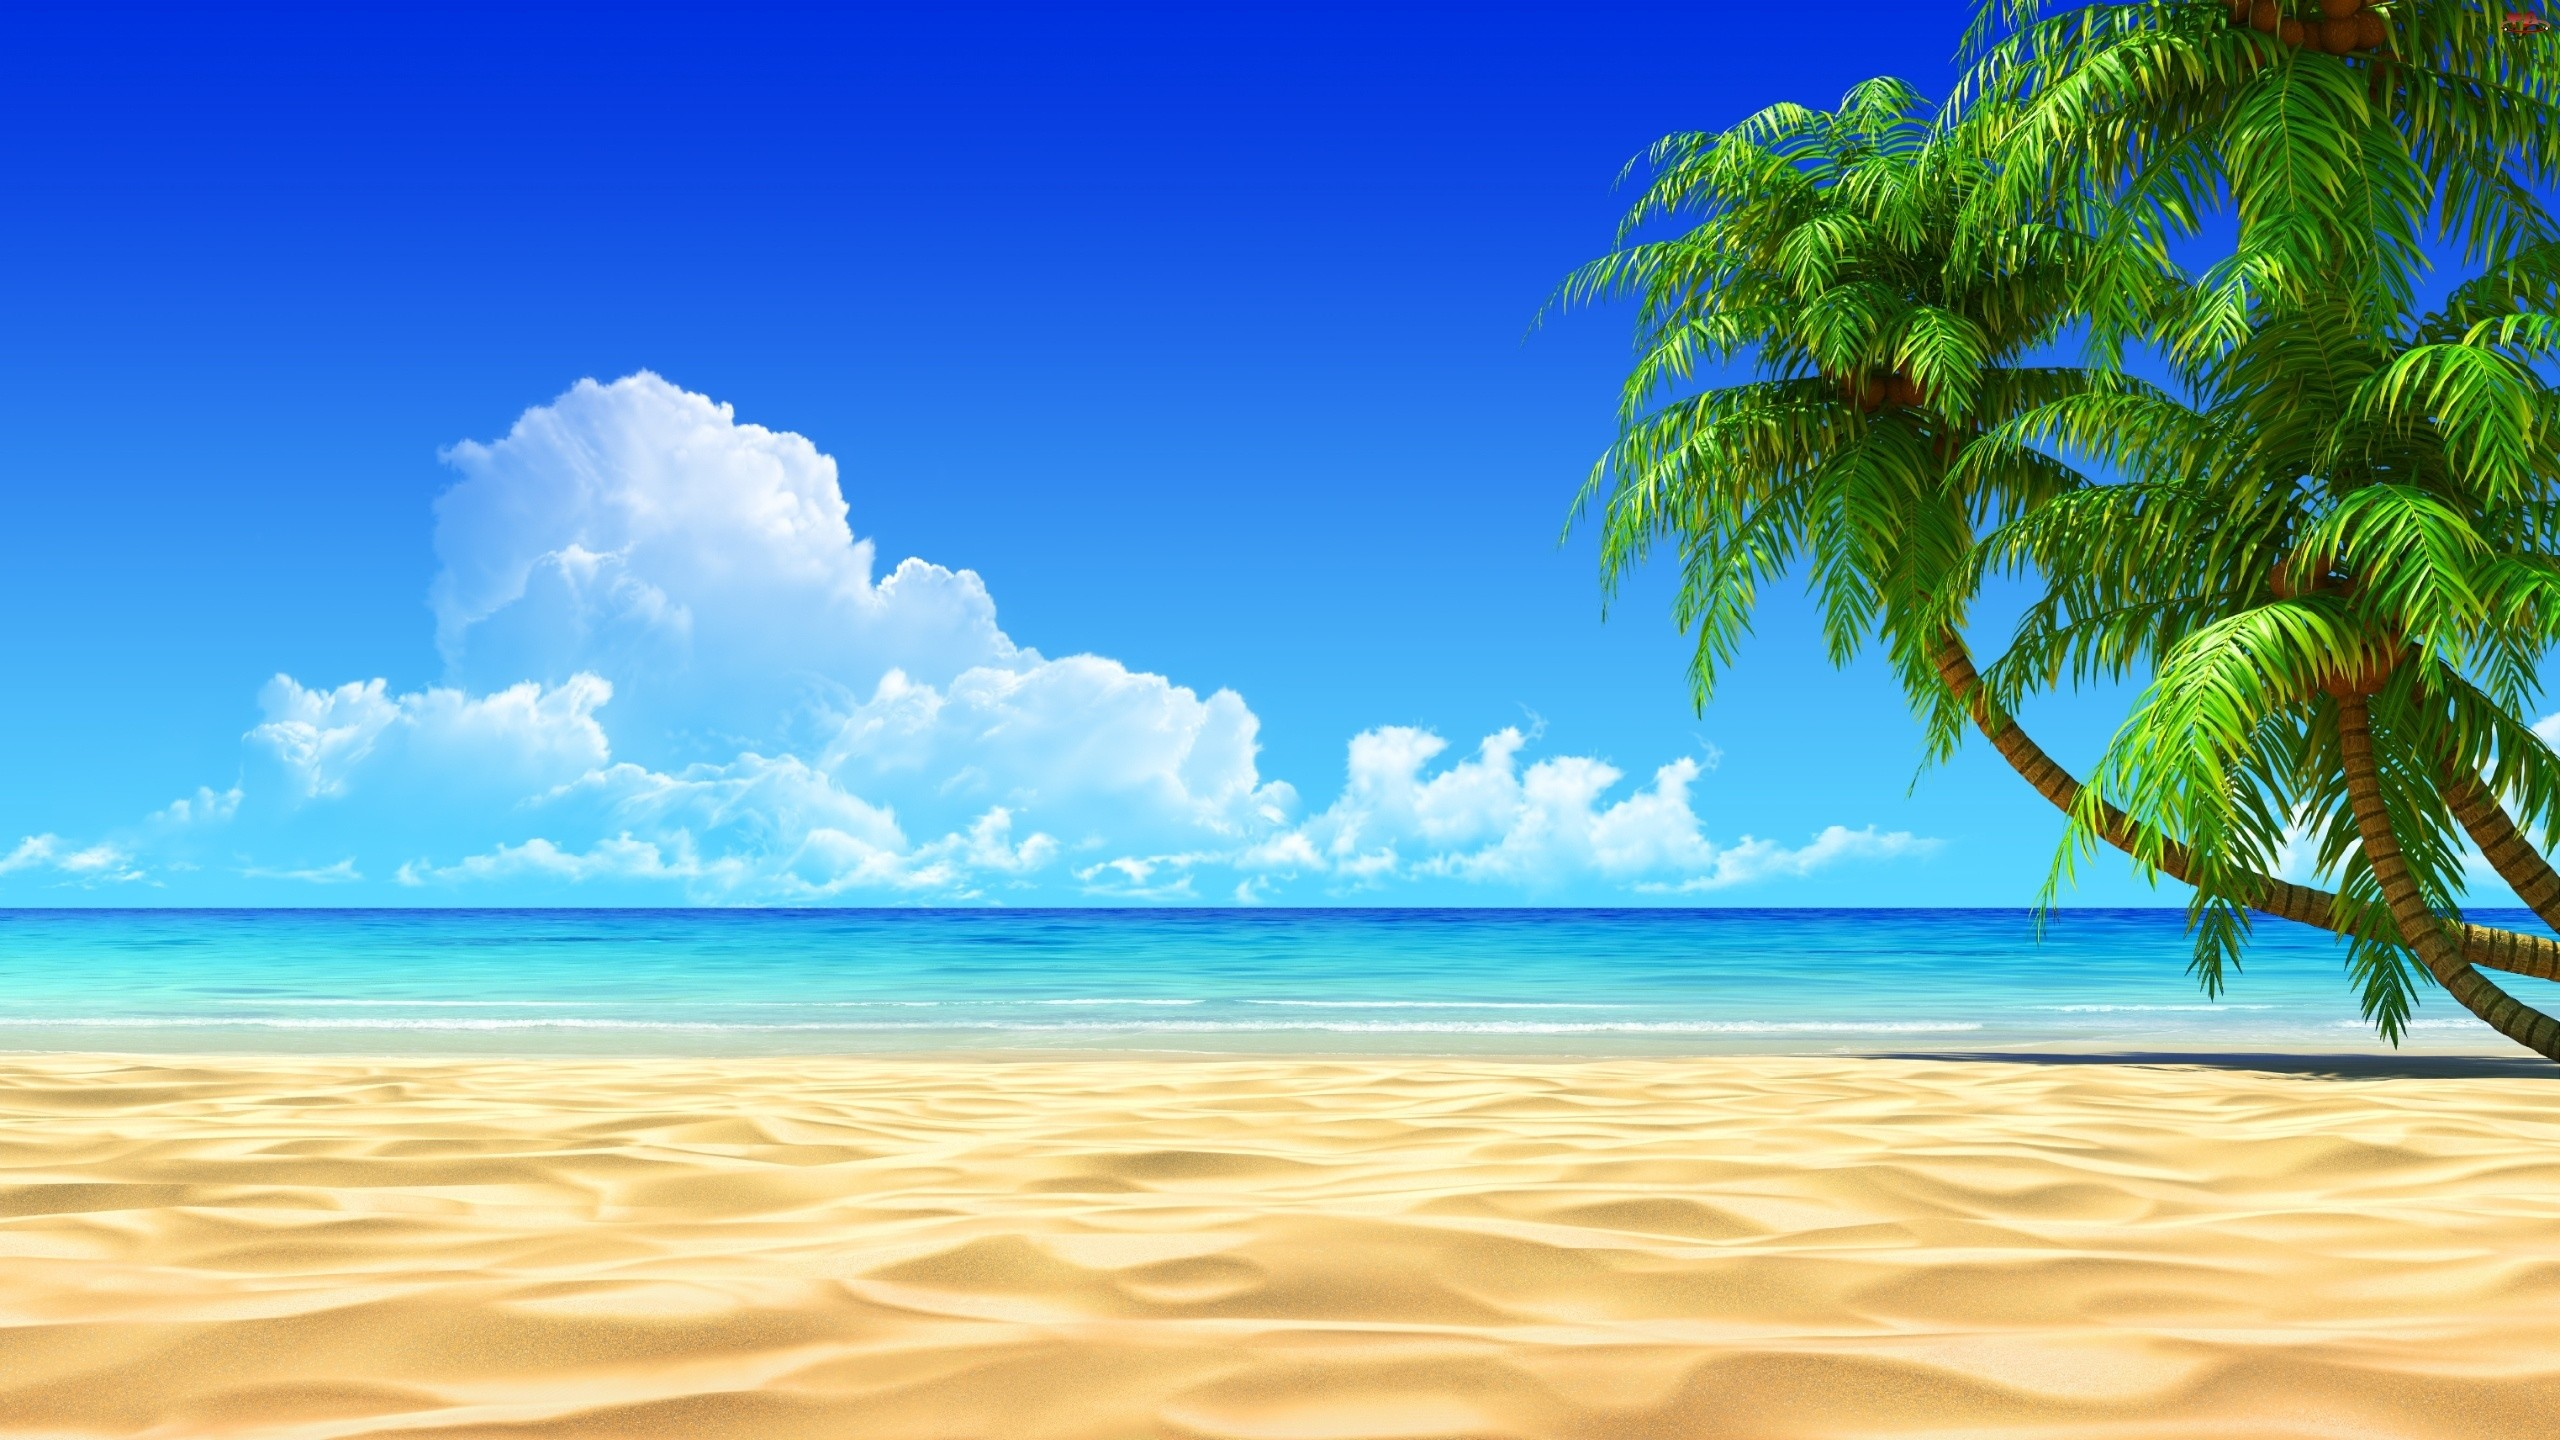 Hd Beach Wallpapers 63 Pictures